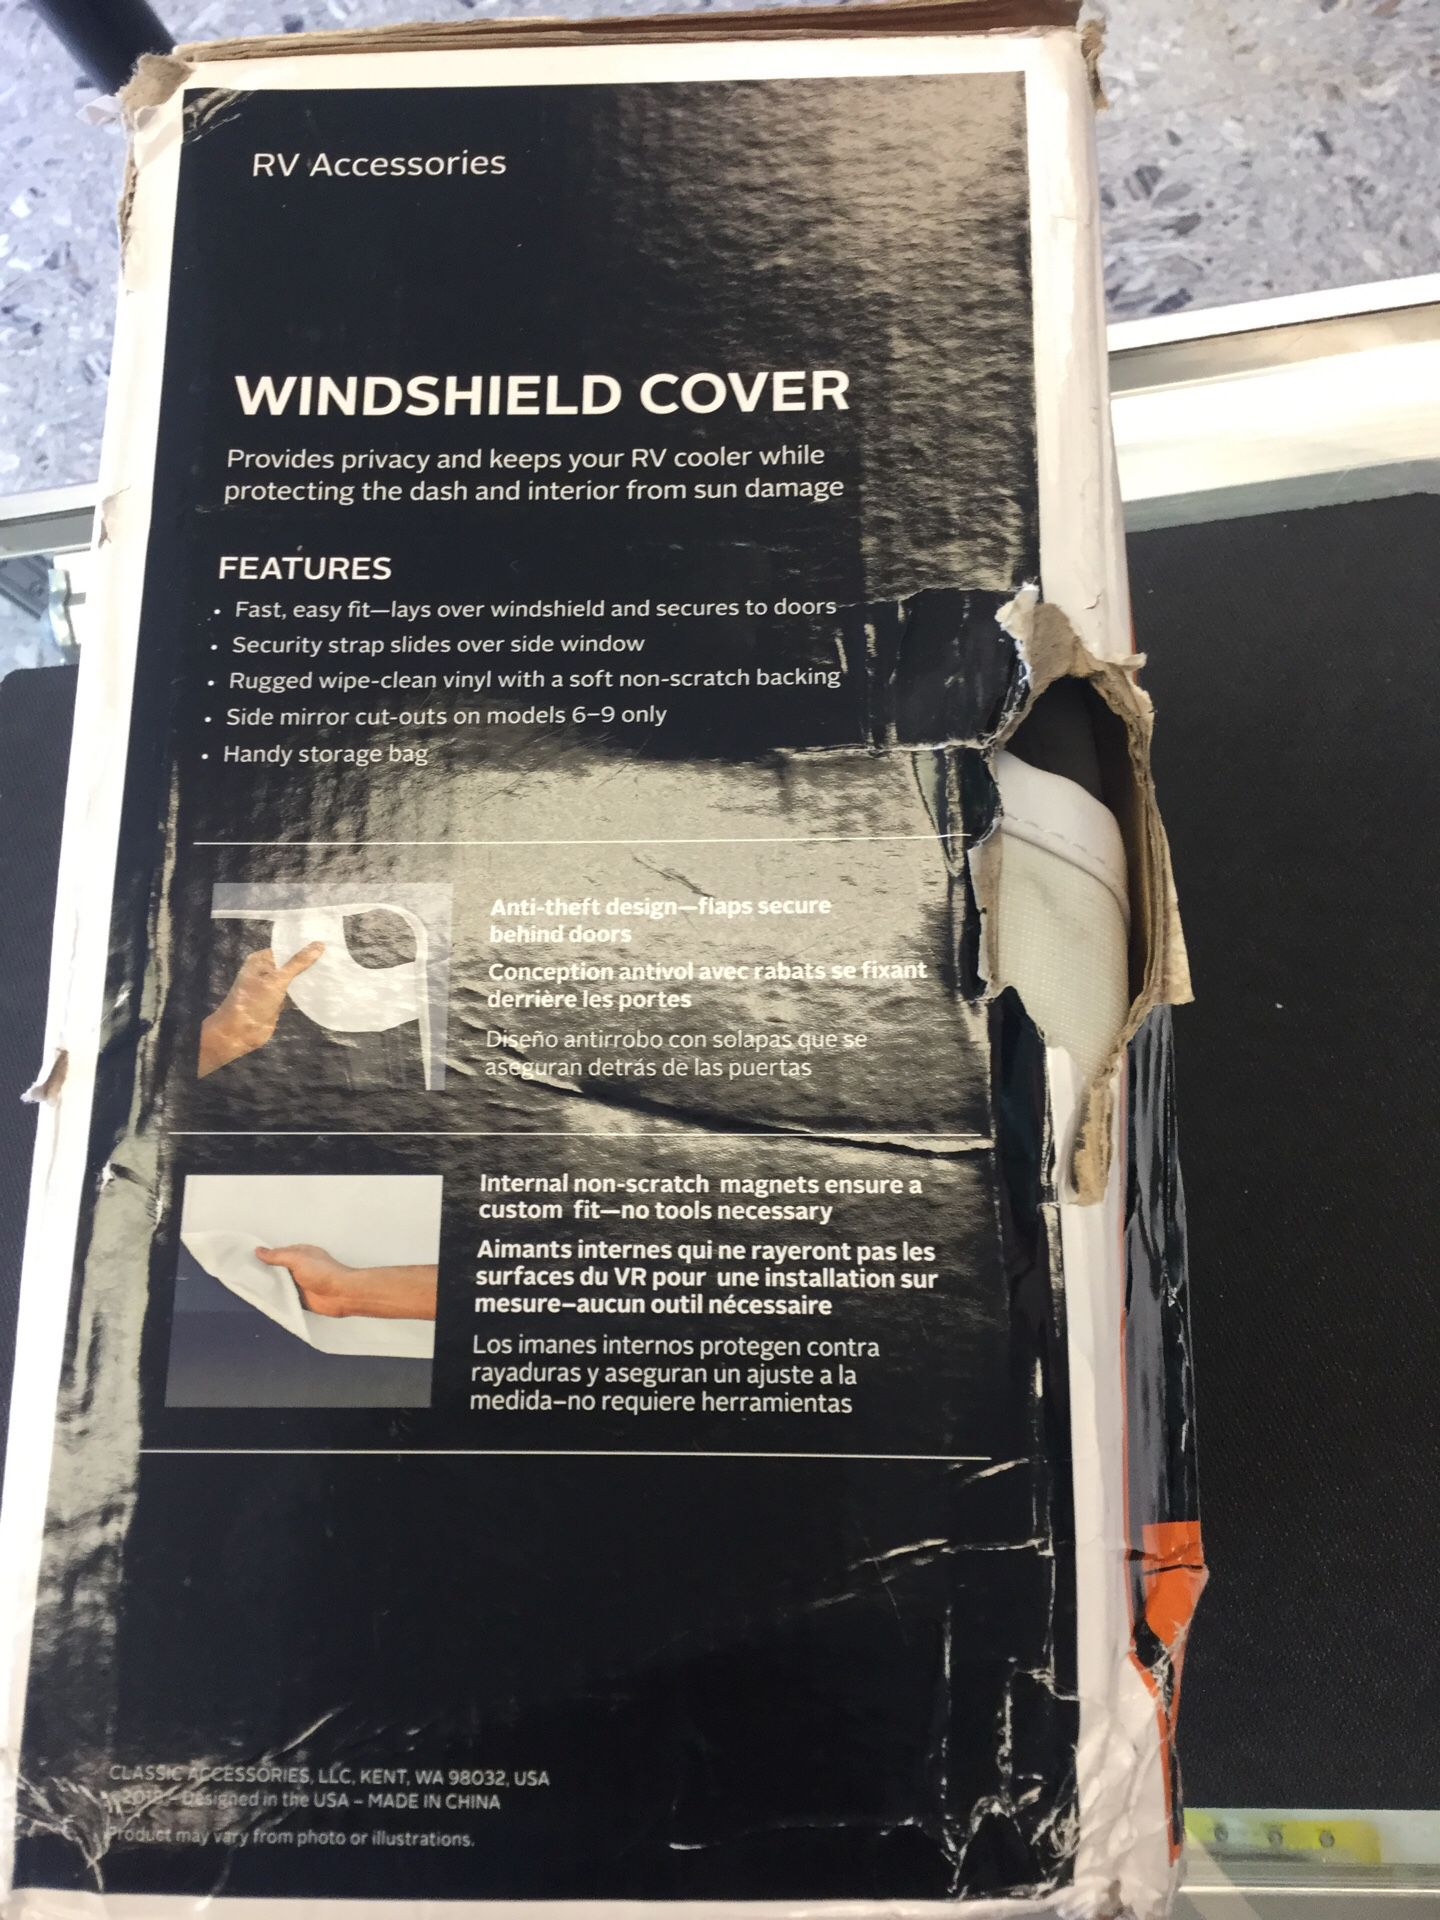 RV Accessories Windshield Cover